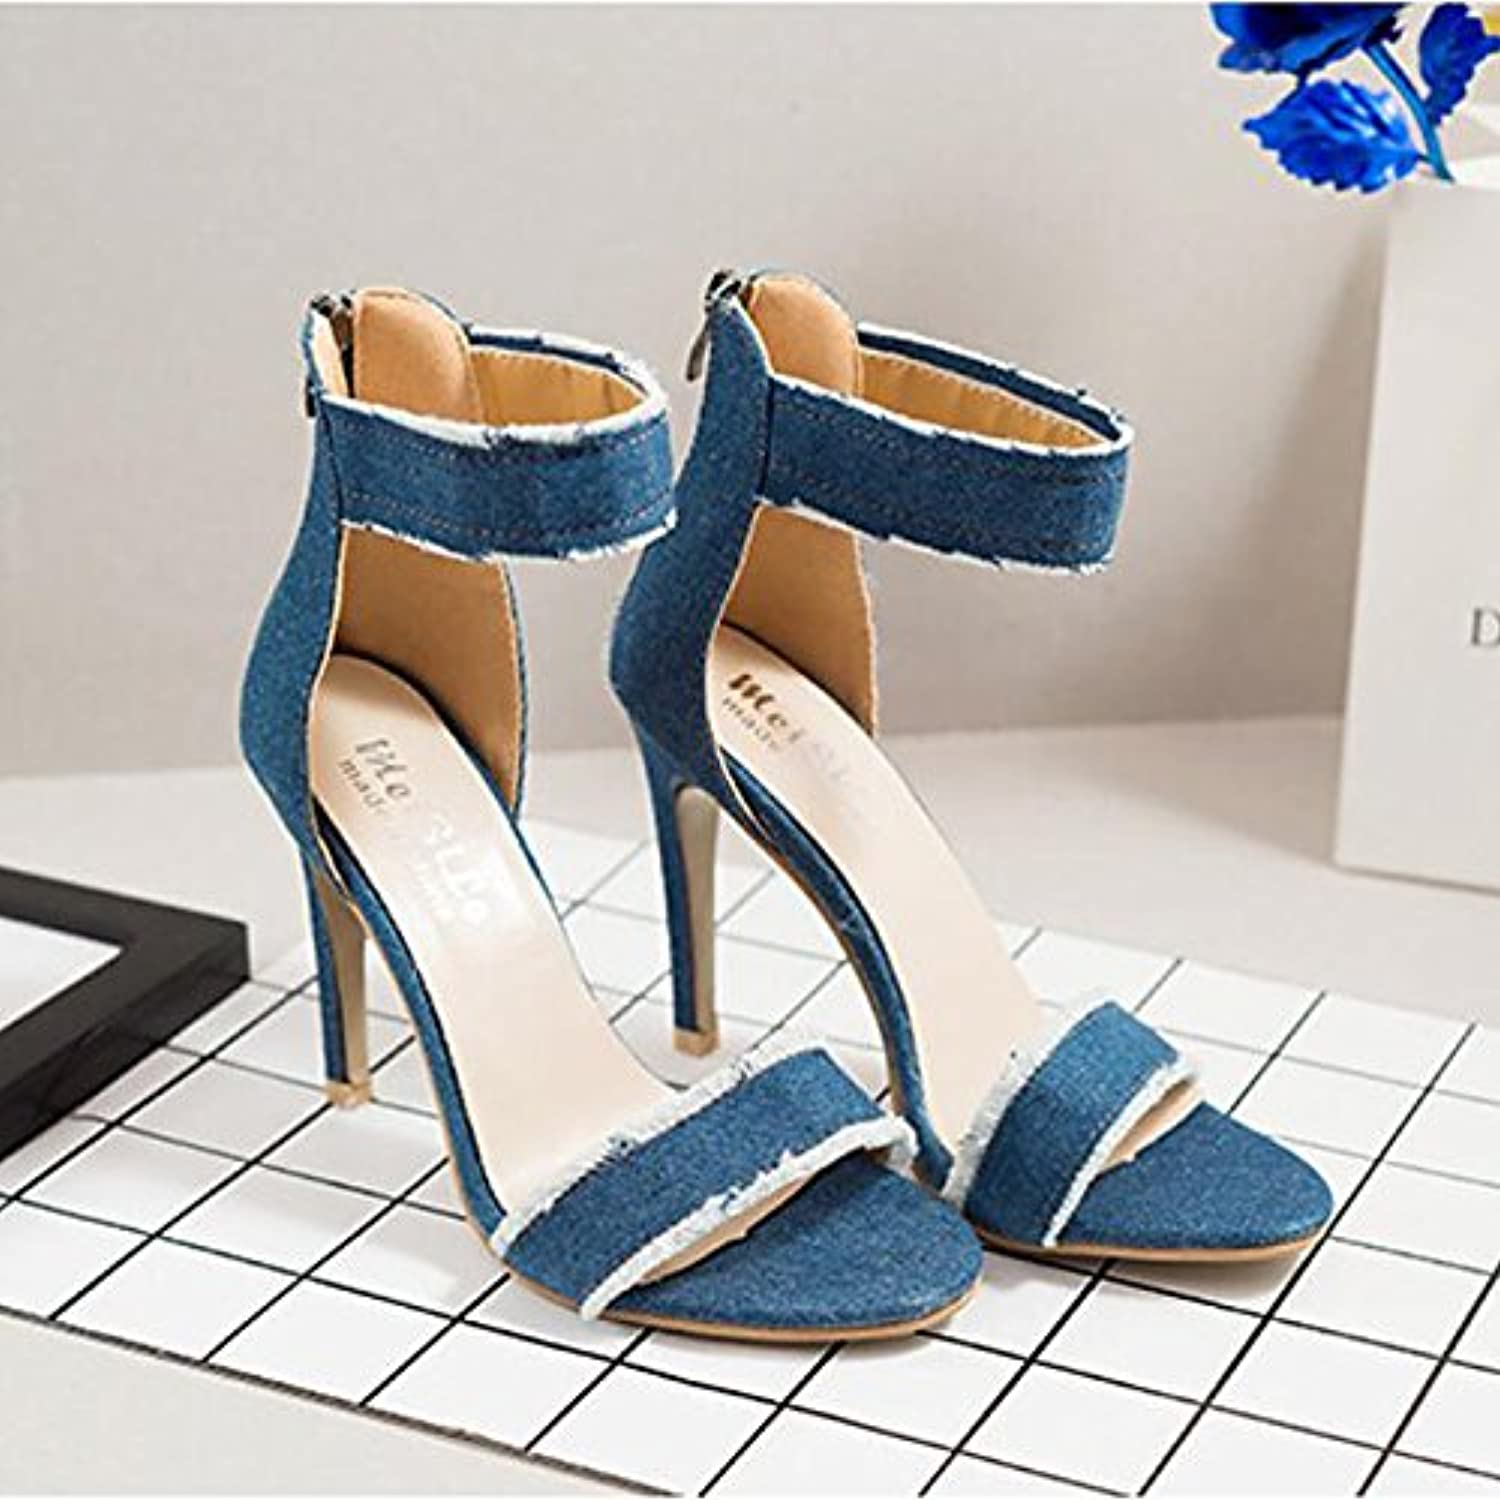 Women's shoes Denim Spring Summer,Two-Piece Basic Pump Ankle Strap Sandals Stiletto Heel Open Toe Hollow-Out for Dress Party &